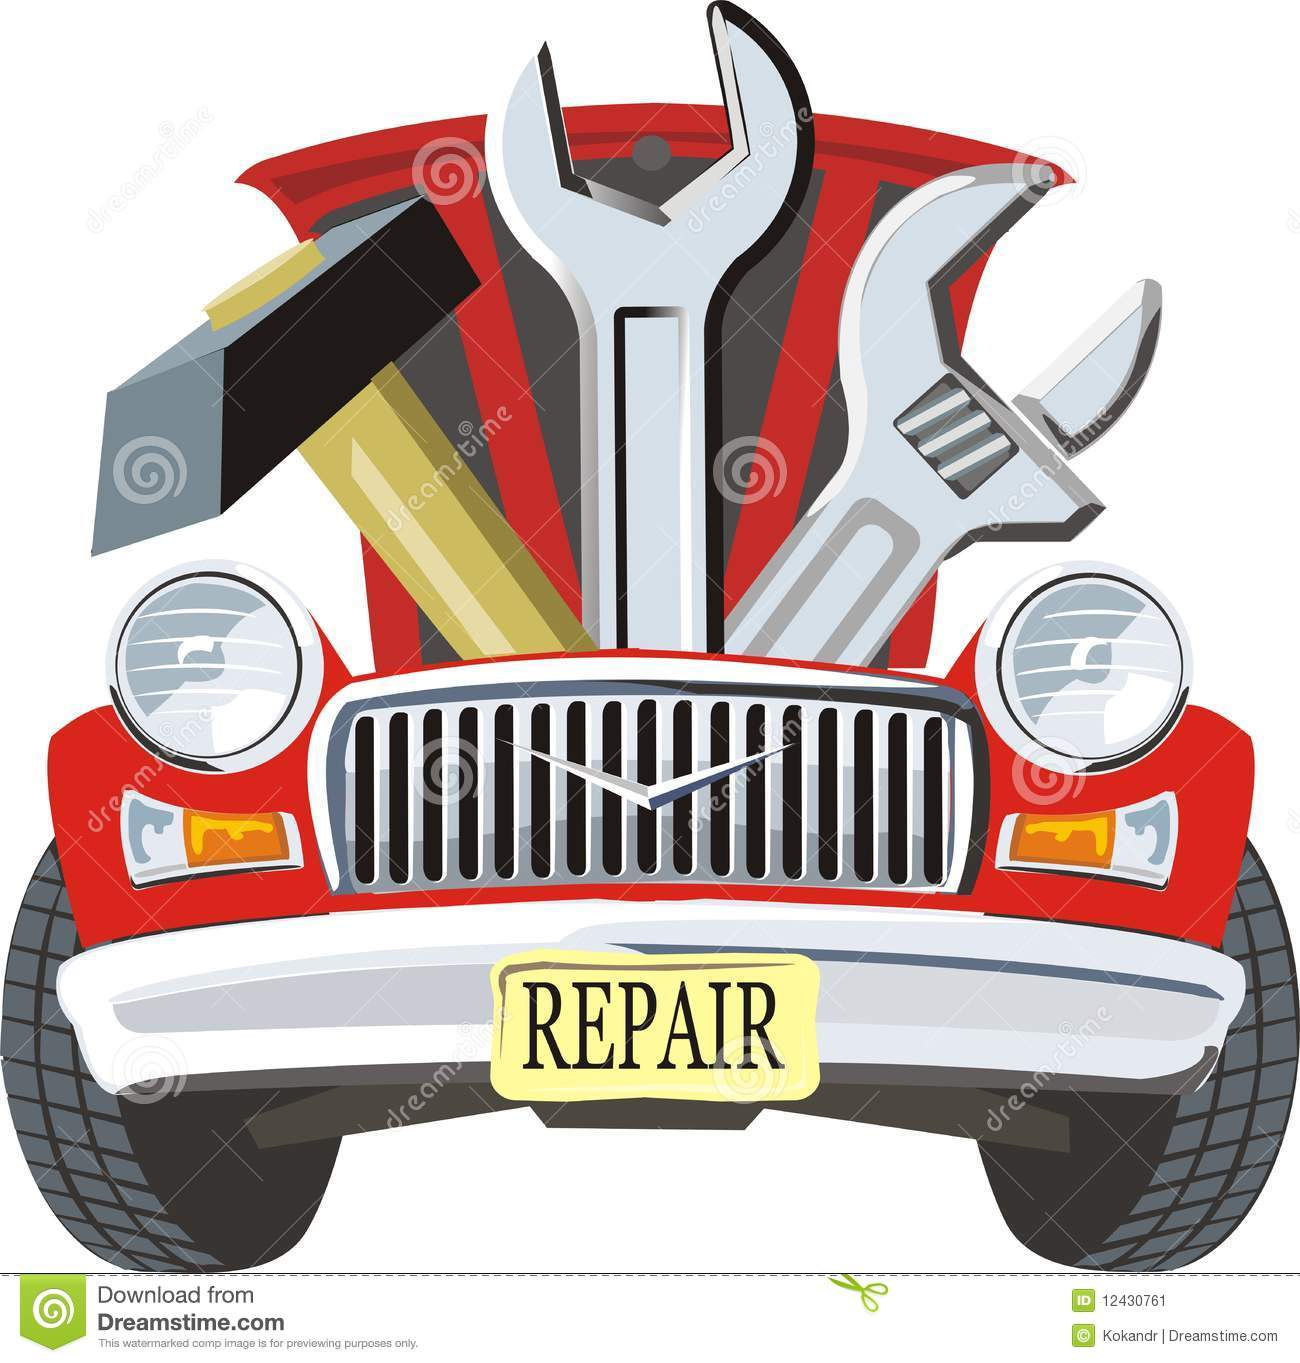 Car Fixed Stock Image - Image: 12430761